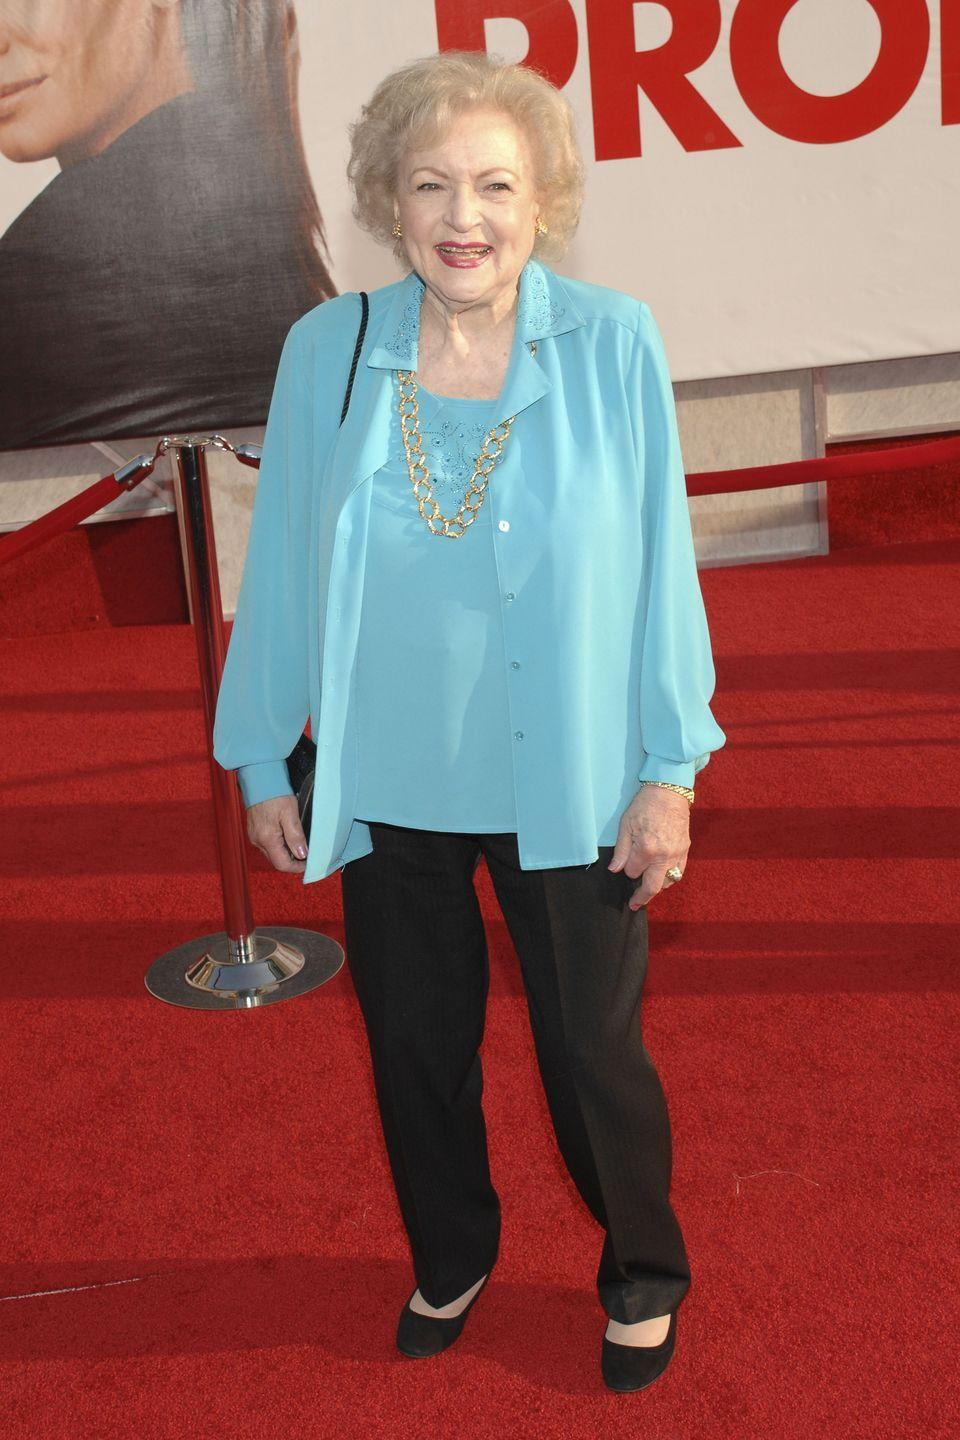 <p>Betty mostly made a name for herself in television throughout her career. However, in the late 2000s, she began appearing in film more frequently. From <em>The Proposal</em> to <em>You Again</em>, it wasn't long before a whole new generation became Betty White fans.</p>